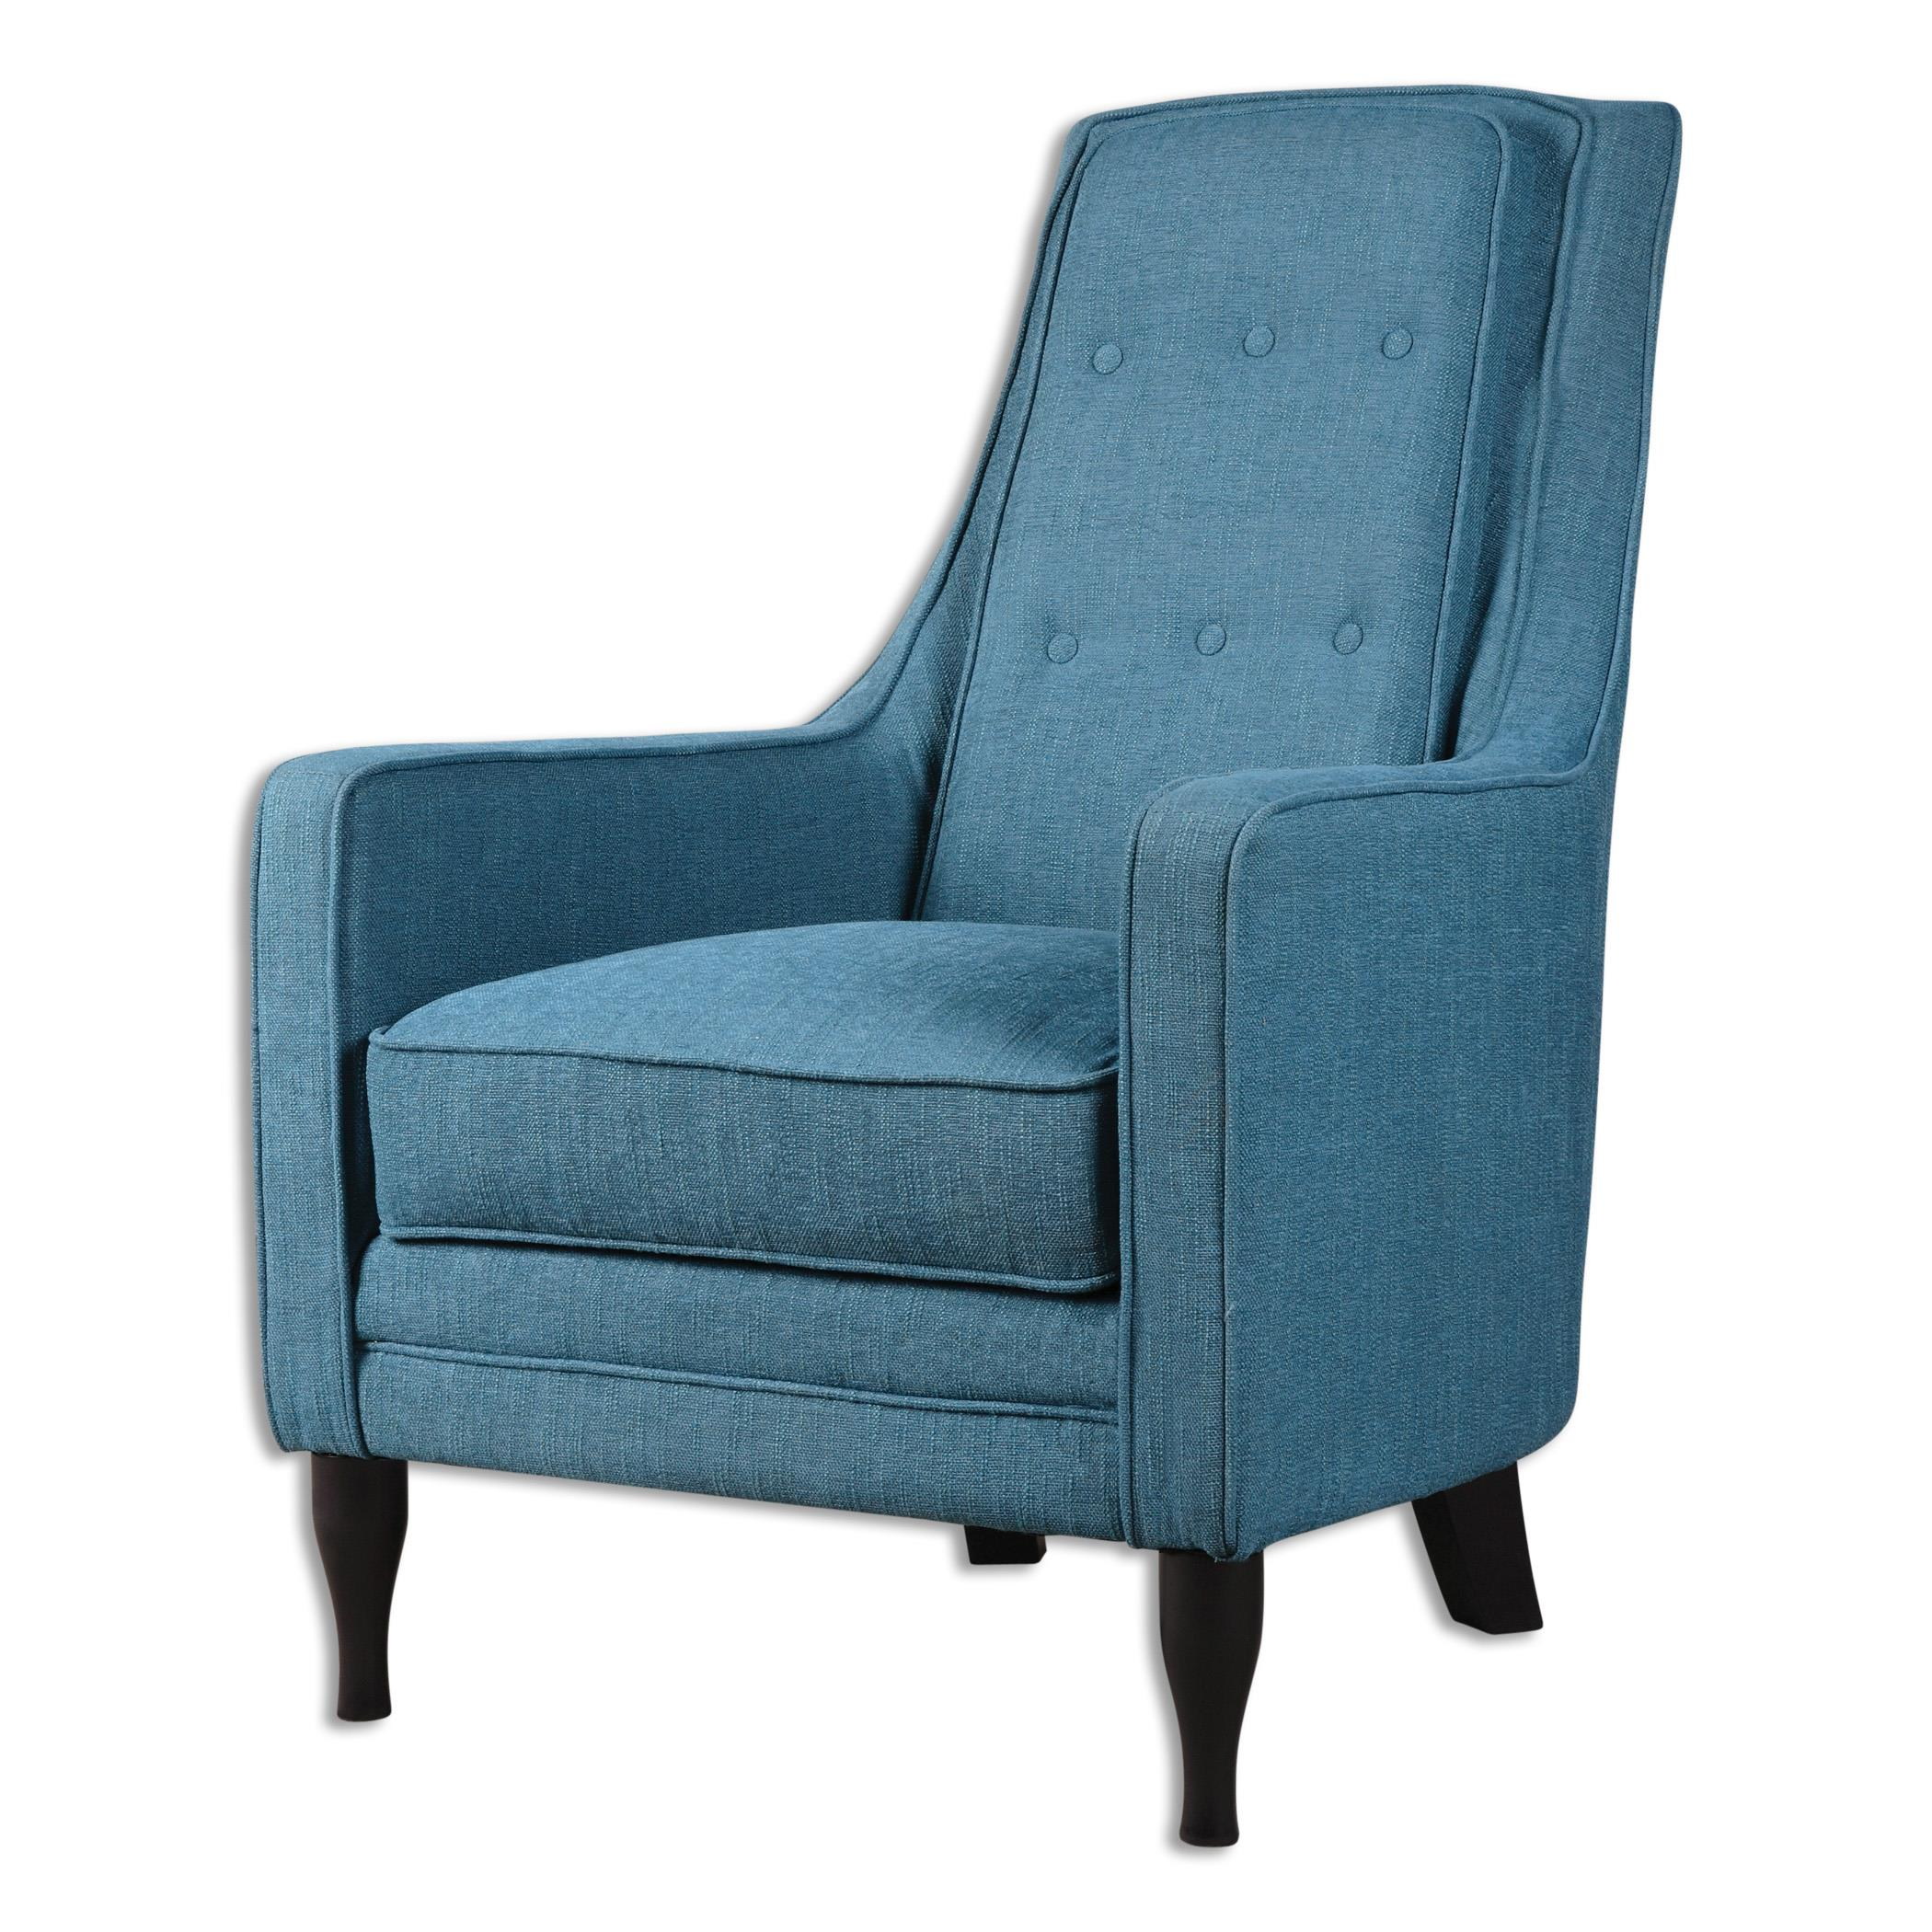 Uttermost Accent Furniture Katana Peacock Blue Armchair - Item Number: 23192